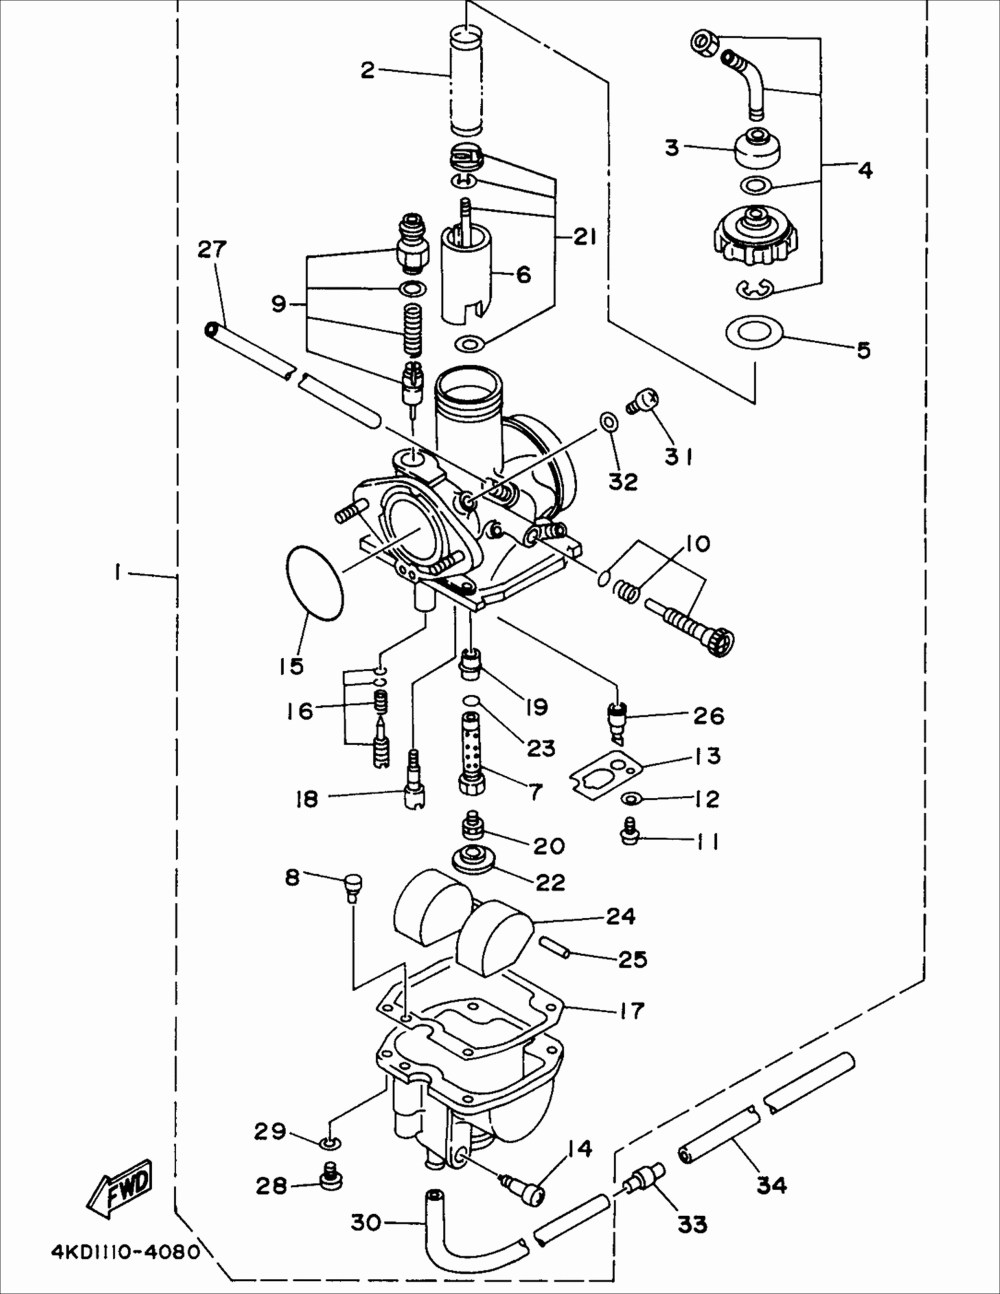 medium resolution of 2001 mitsubishi galant wiring schematic wiring library rh 1 akszer eu mitsubishi endeavor engine diagram mitsubishi lancer engine diagram